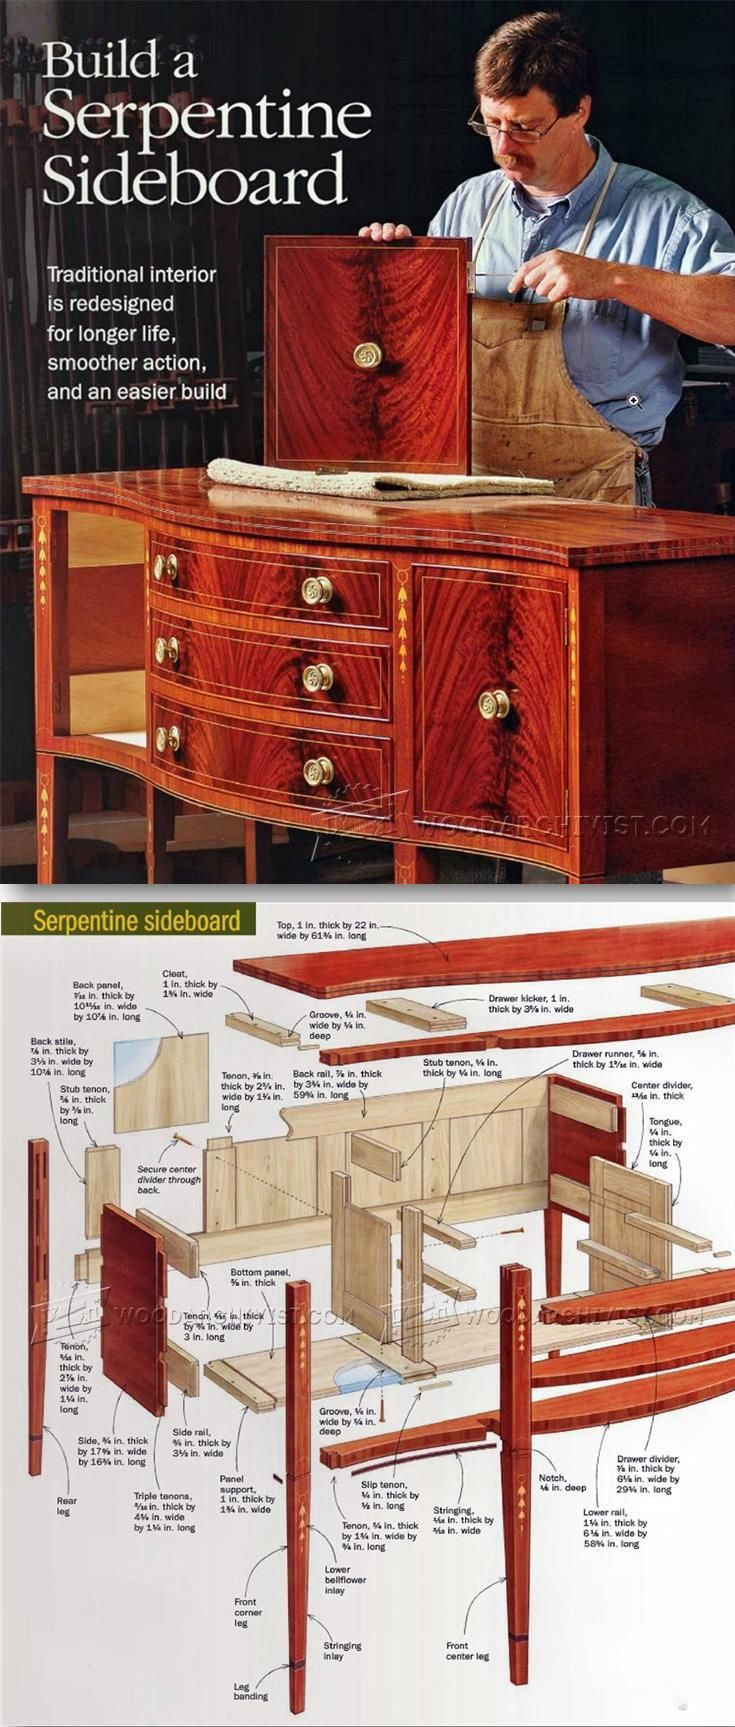 Sideboard Plan - Furniture Plans and Projects | WoodArchivist.com